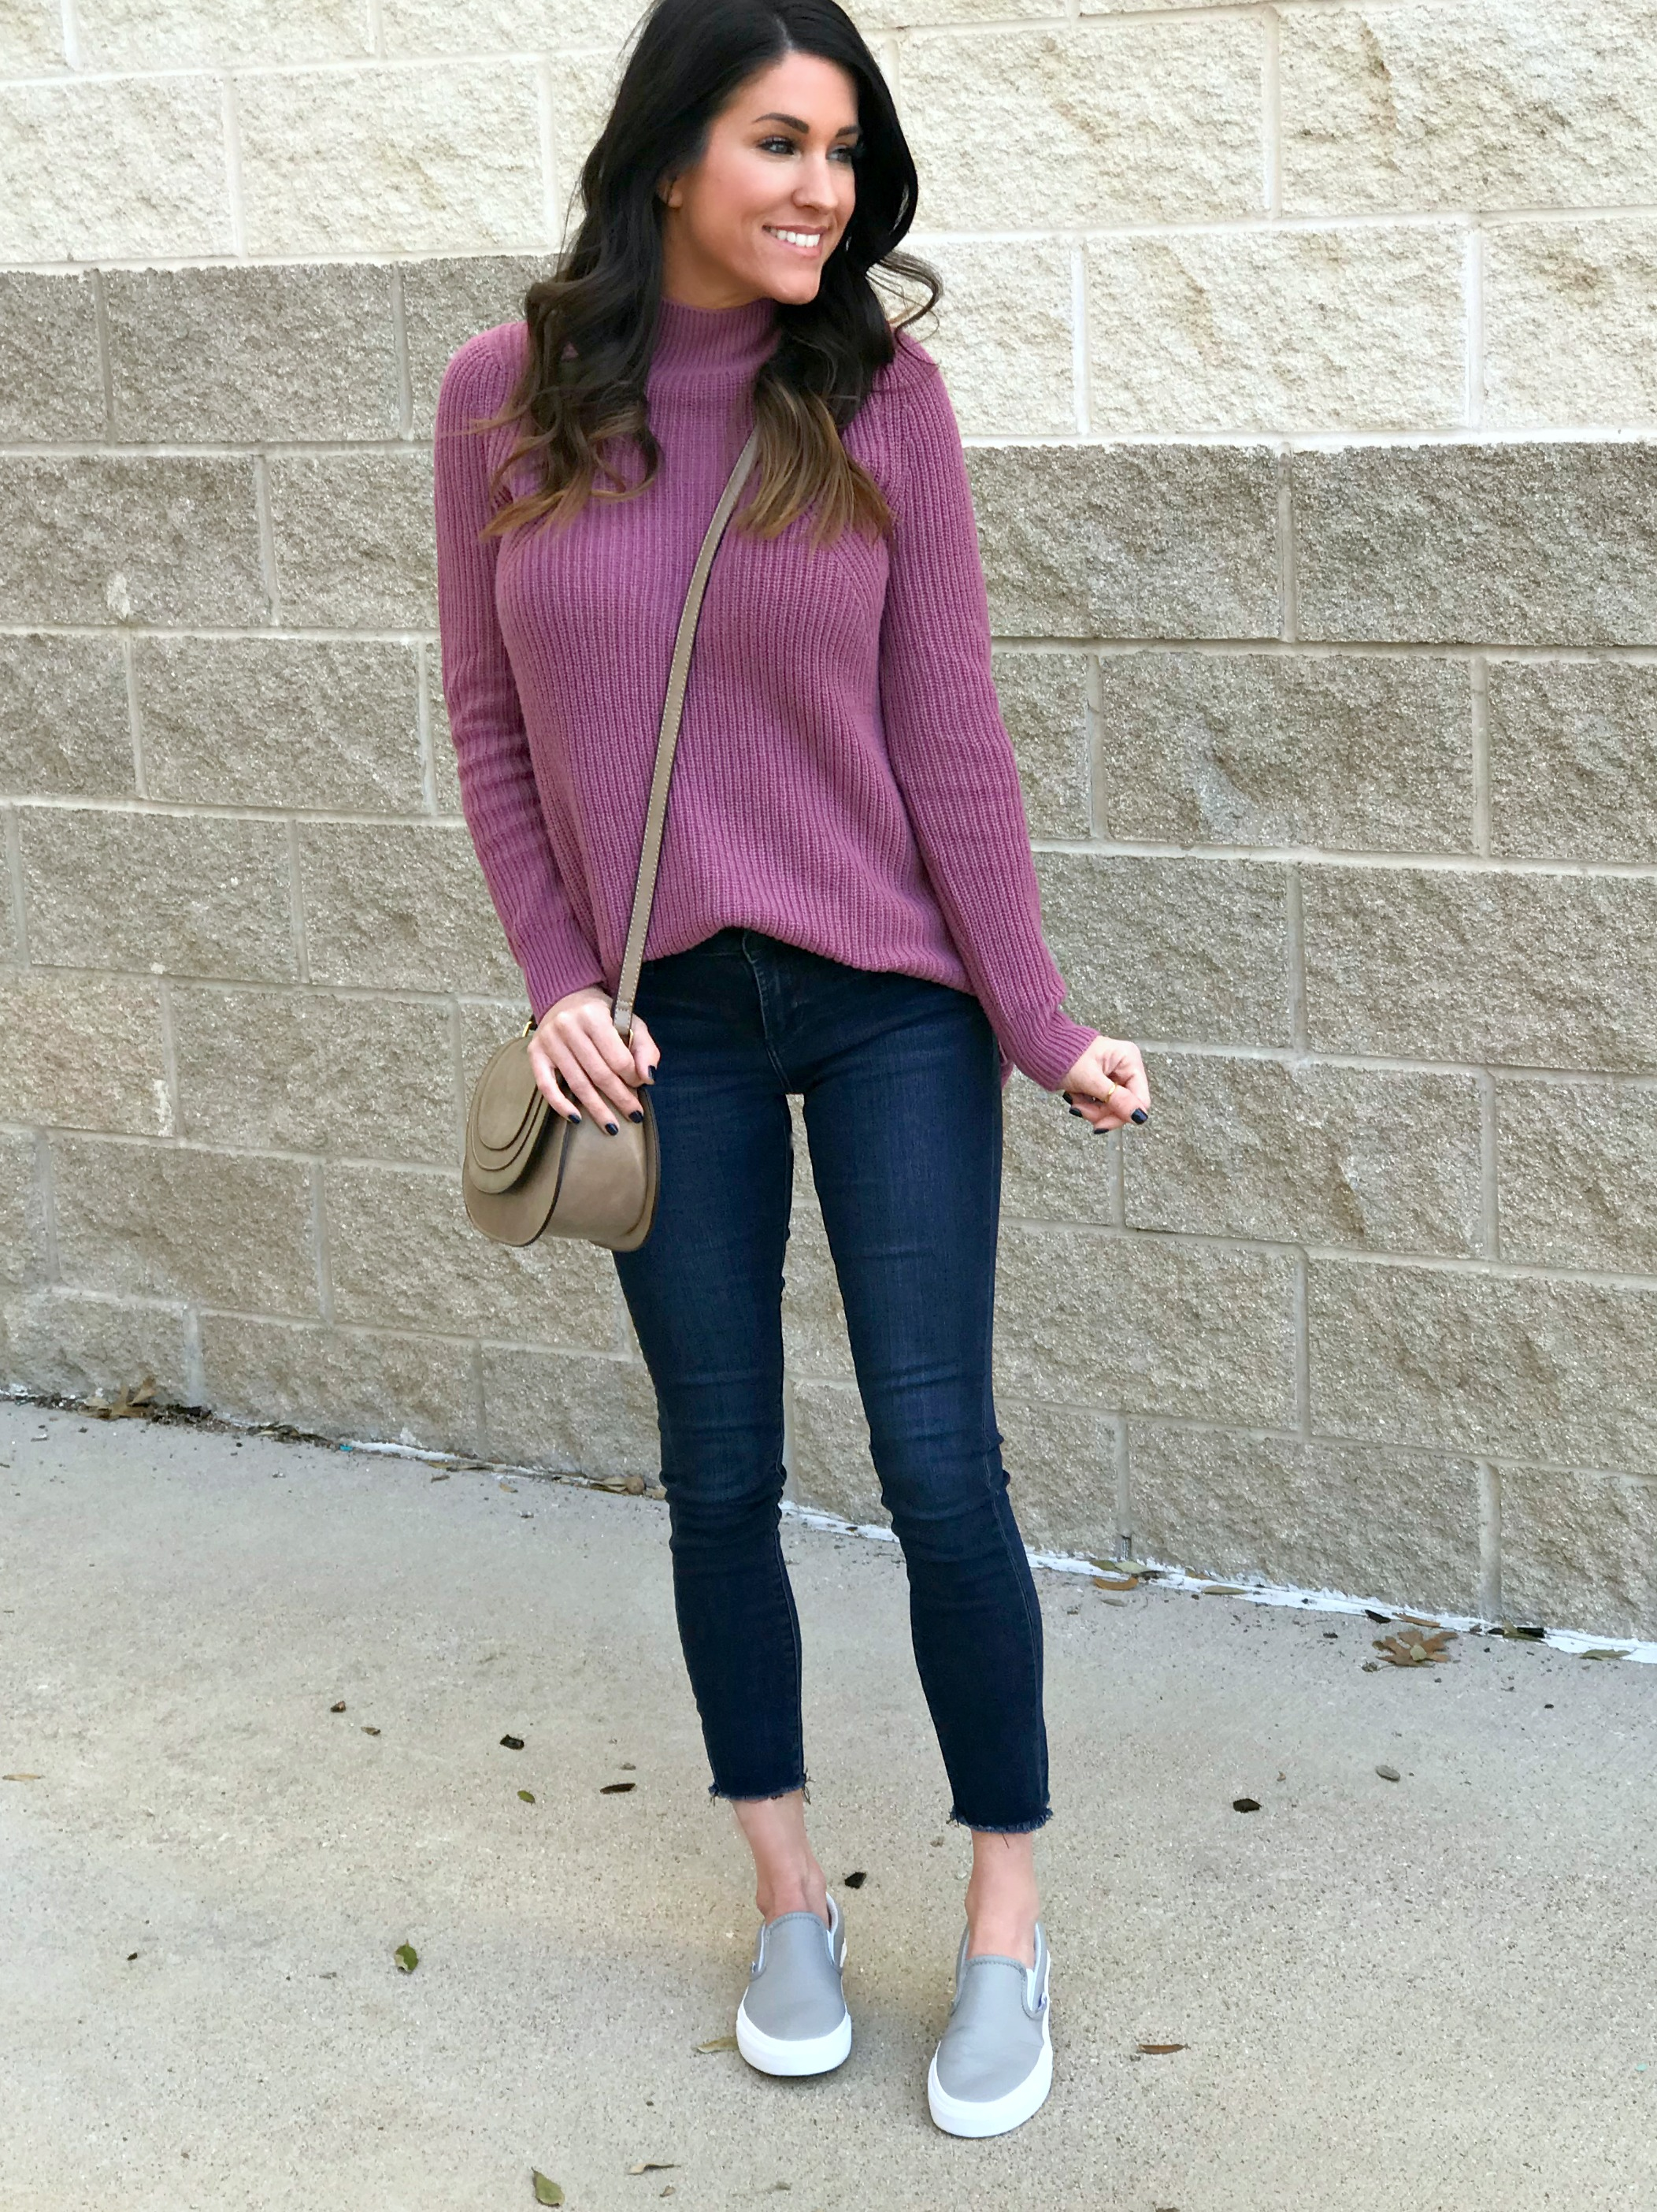 Casual Sneakers Outfit